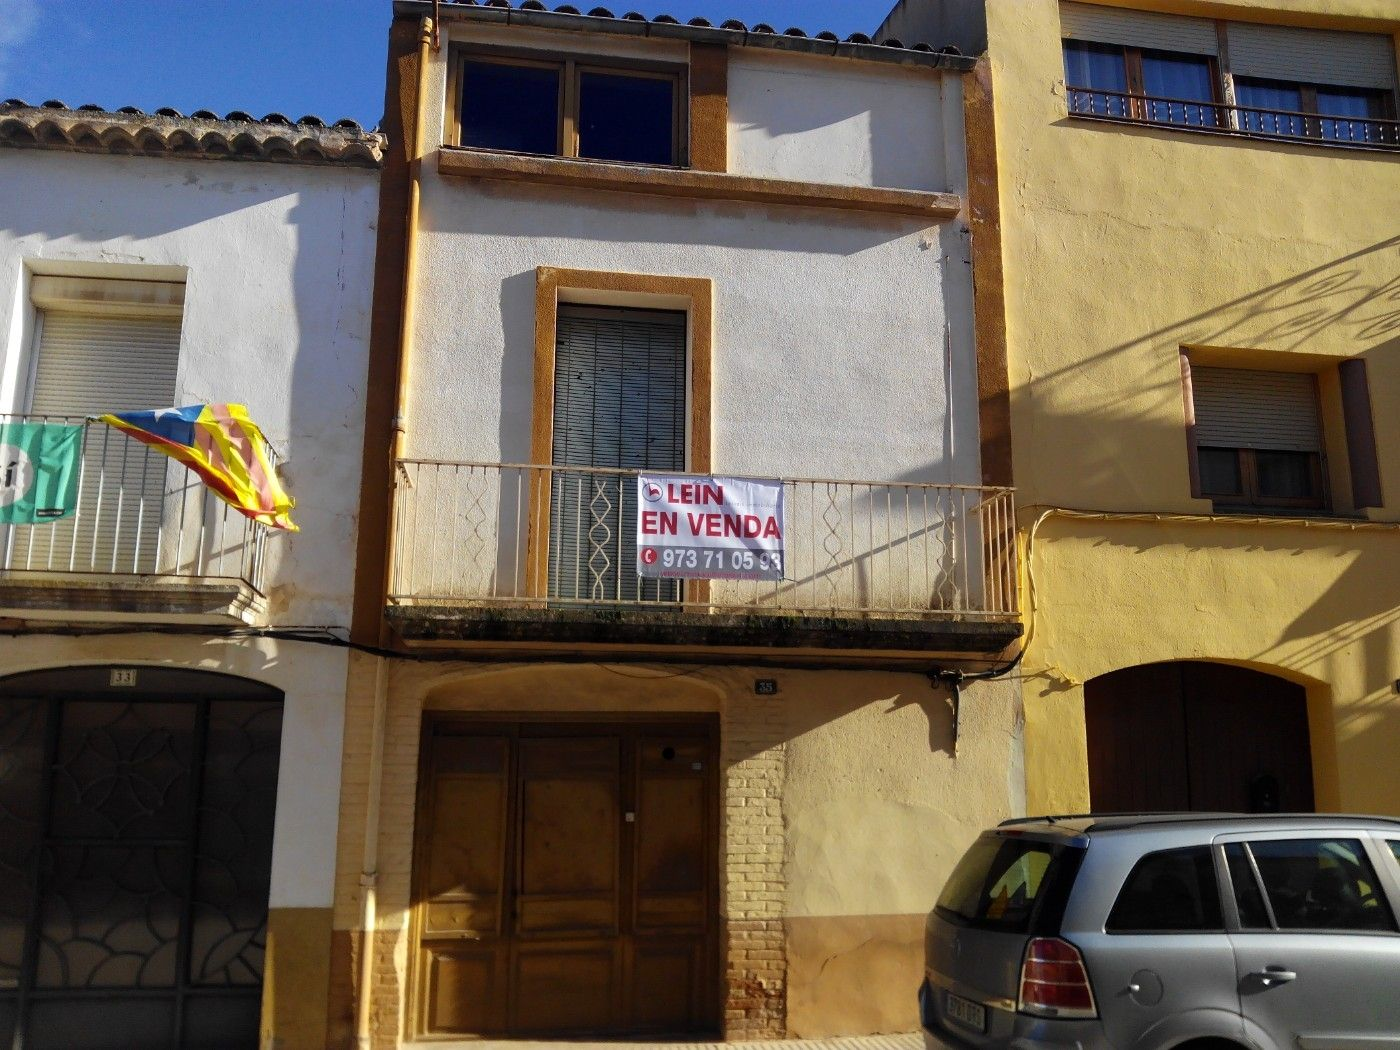 House in Carrer sant marti, 35